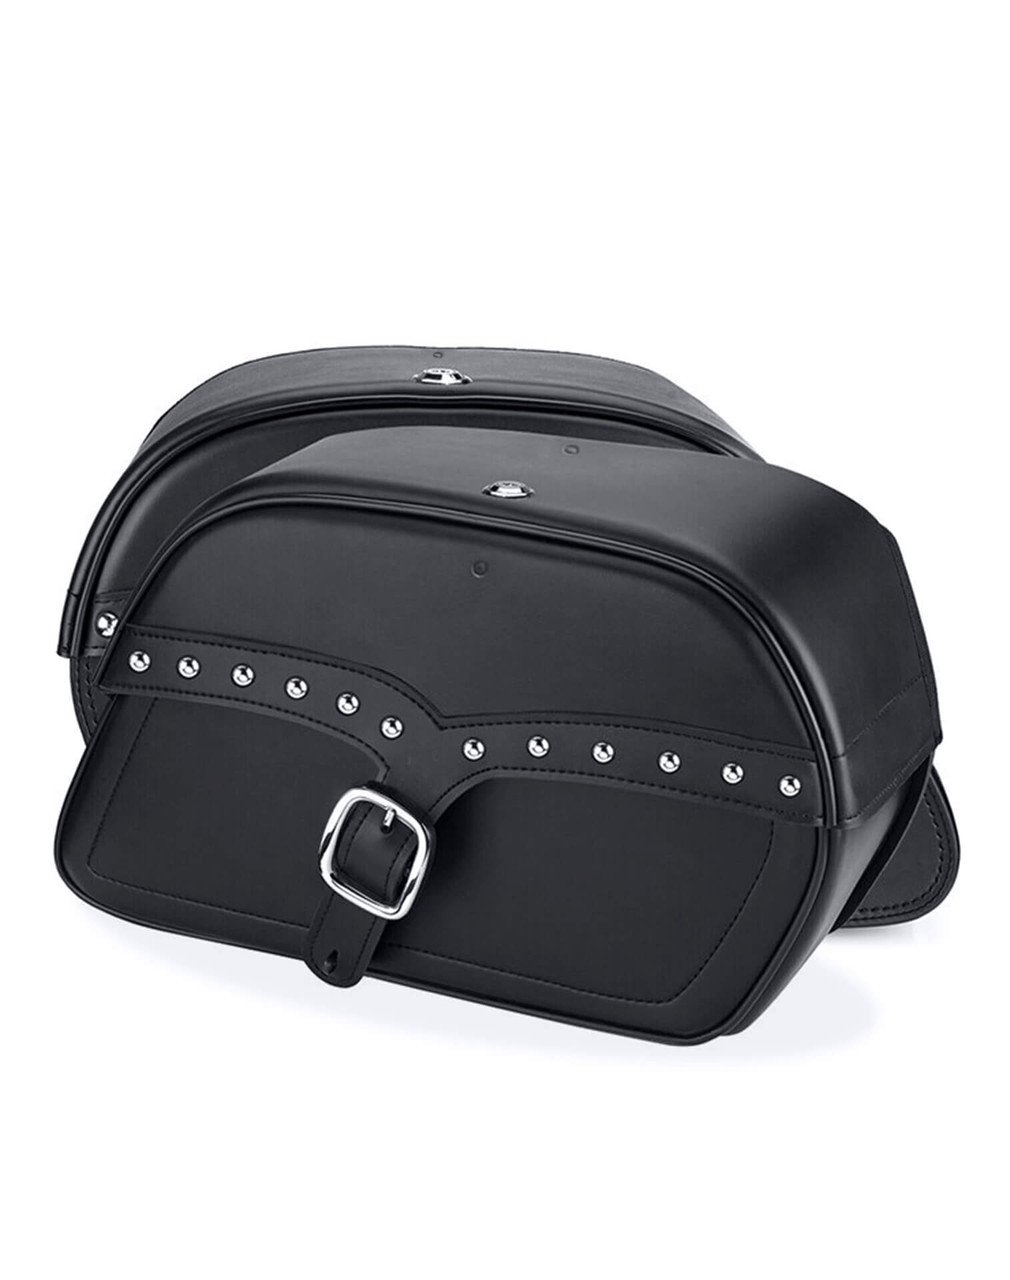 Suzuki Intruder 1500 VL1500 Charger Single Strap Studded Motorcycle Saddlebags Both Bags View